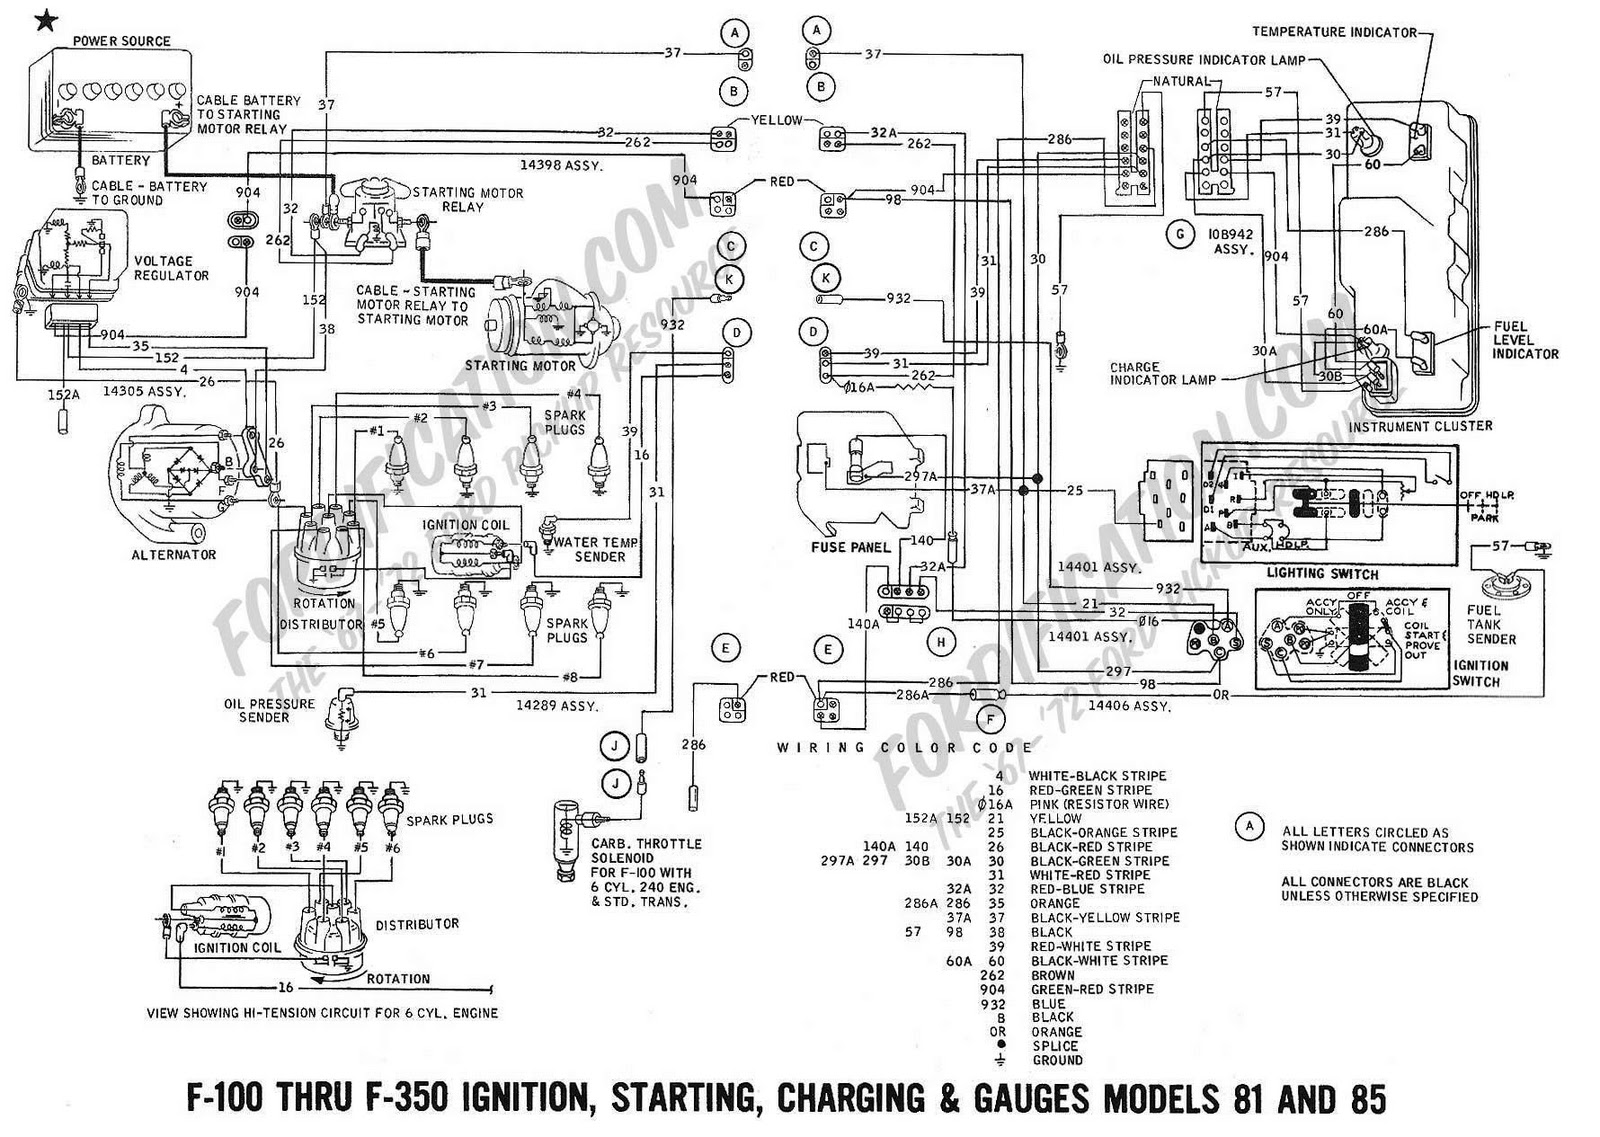 1969 Ford F100 F350 Ignition%2C Starting%2C Charging%2C And Gauges Wiring Diagram 1996 peterbilt wiring diagram 1996 free wiring diagrams Panasonic Wiring Harness Diagram at fashall.co